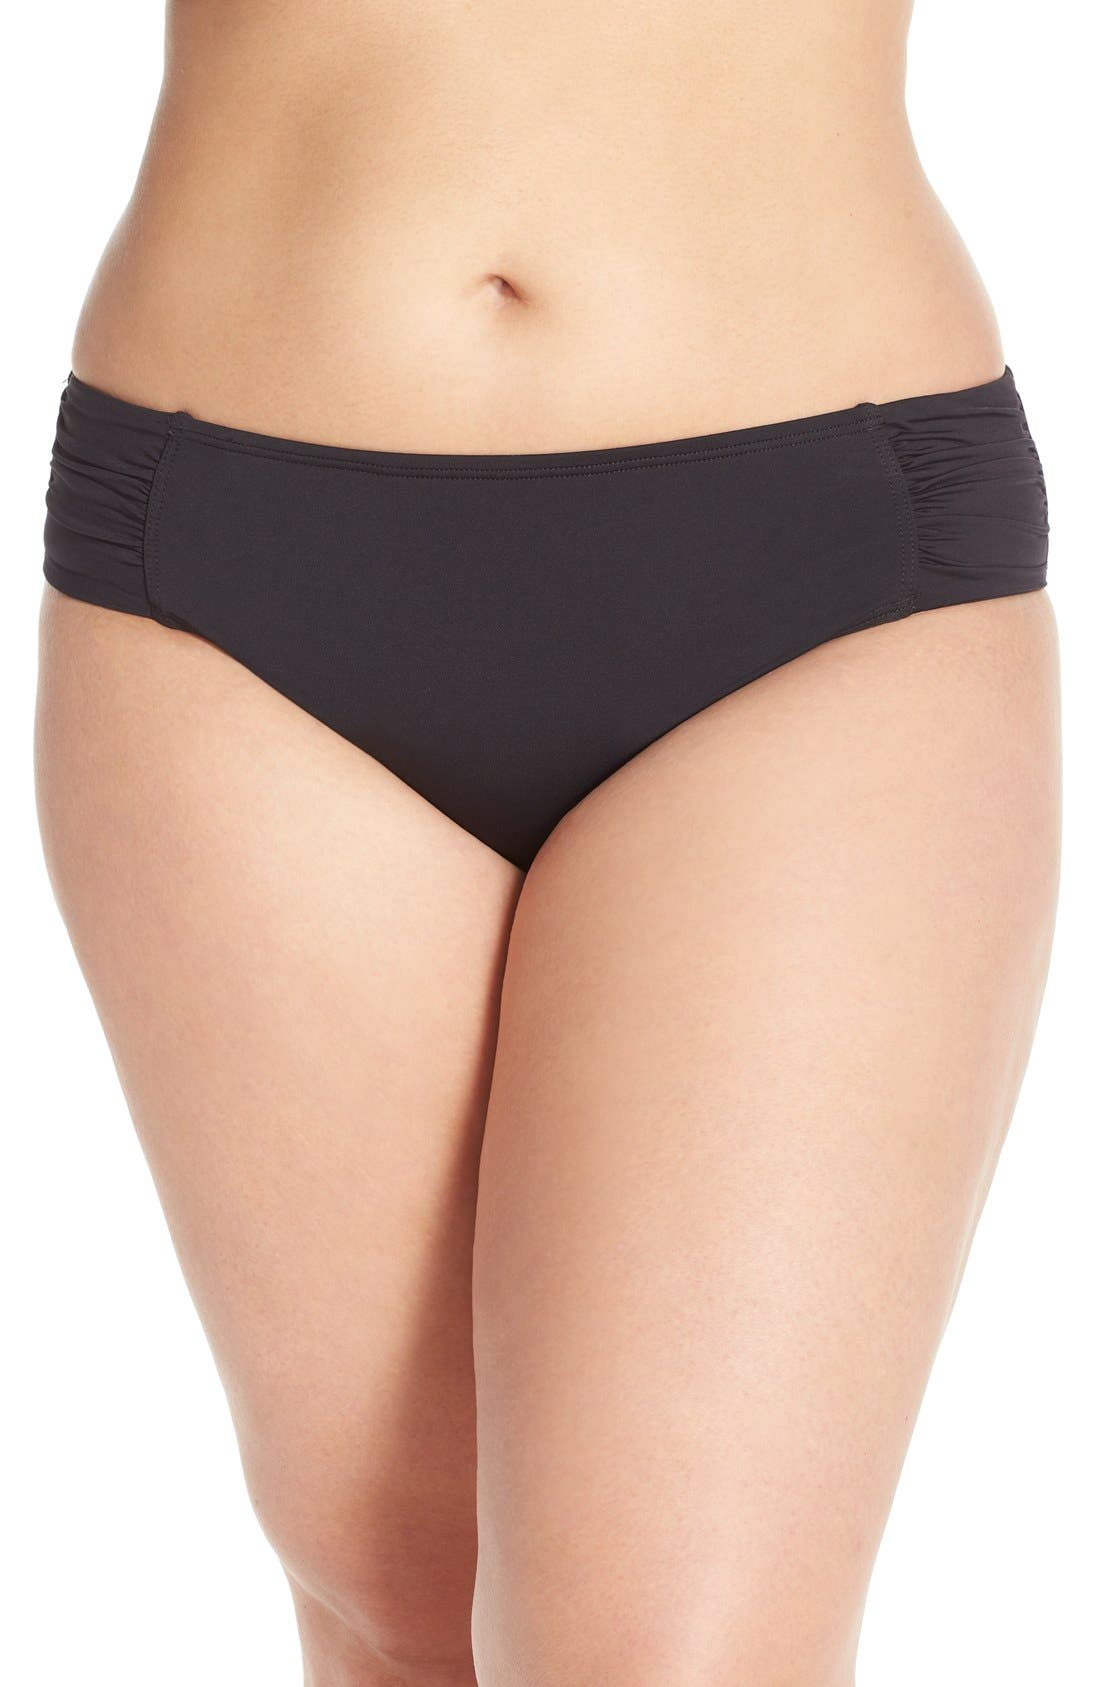 Alternate Image 1 Selected - Tommy Bahama 'Pearl' Bikini Bottoms (Plus Size) (Nordstrom Exclusive)